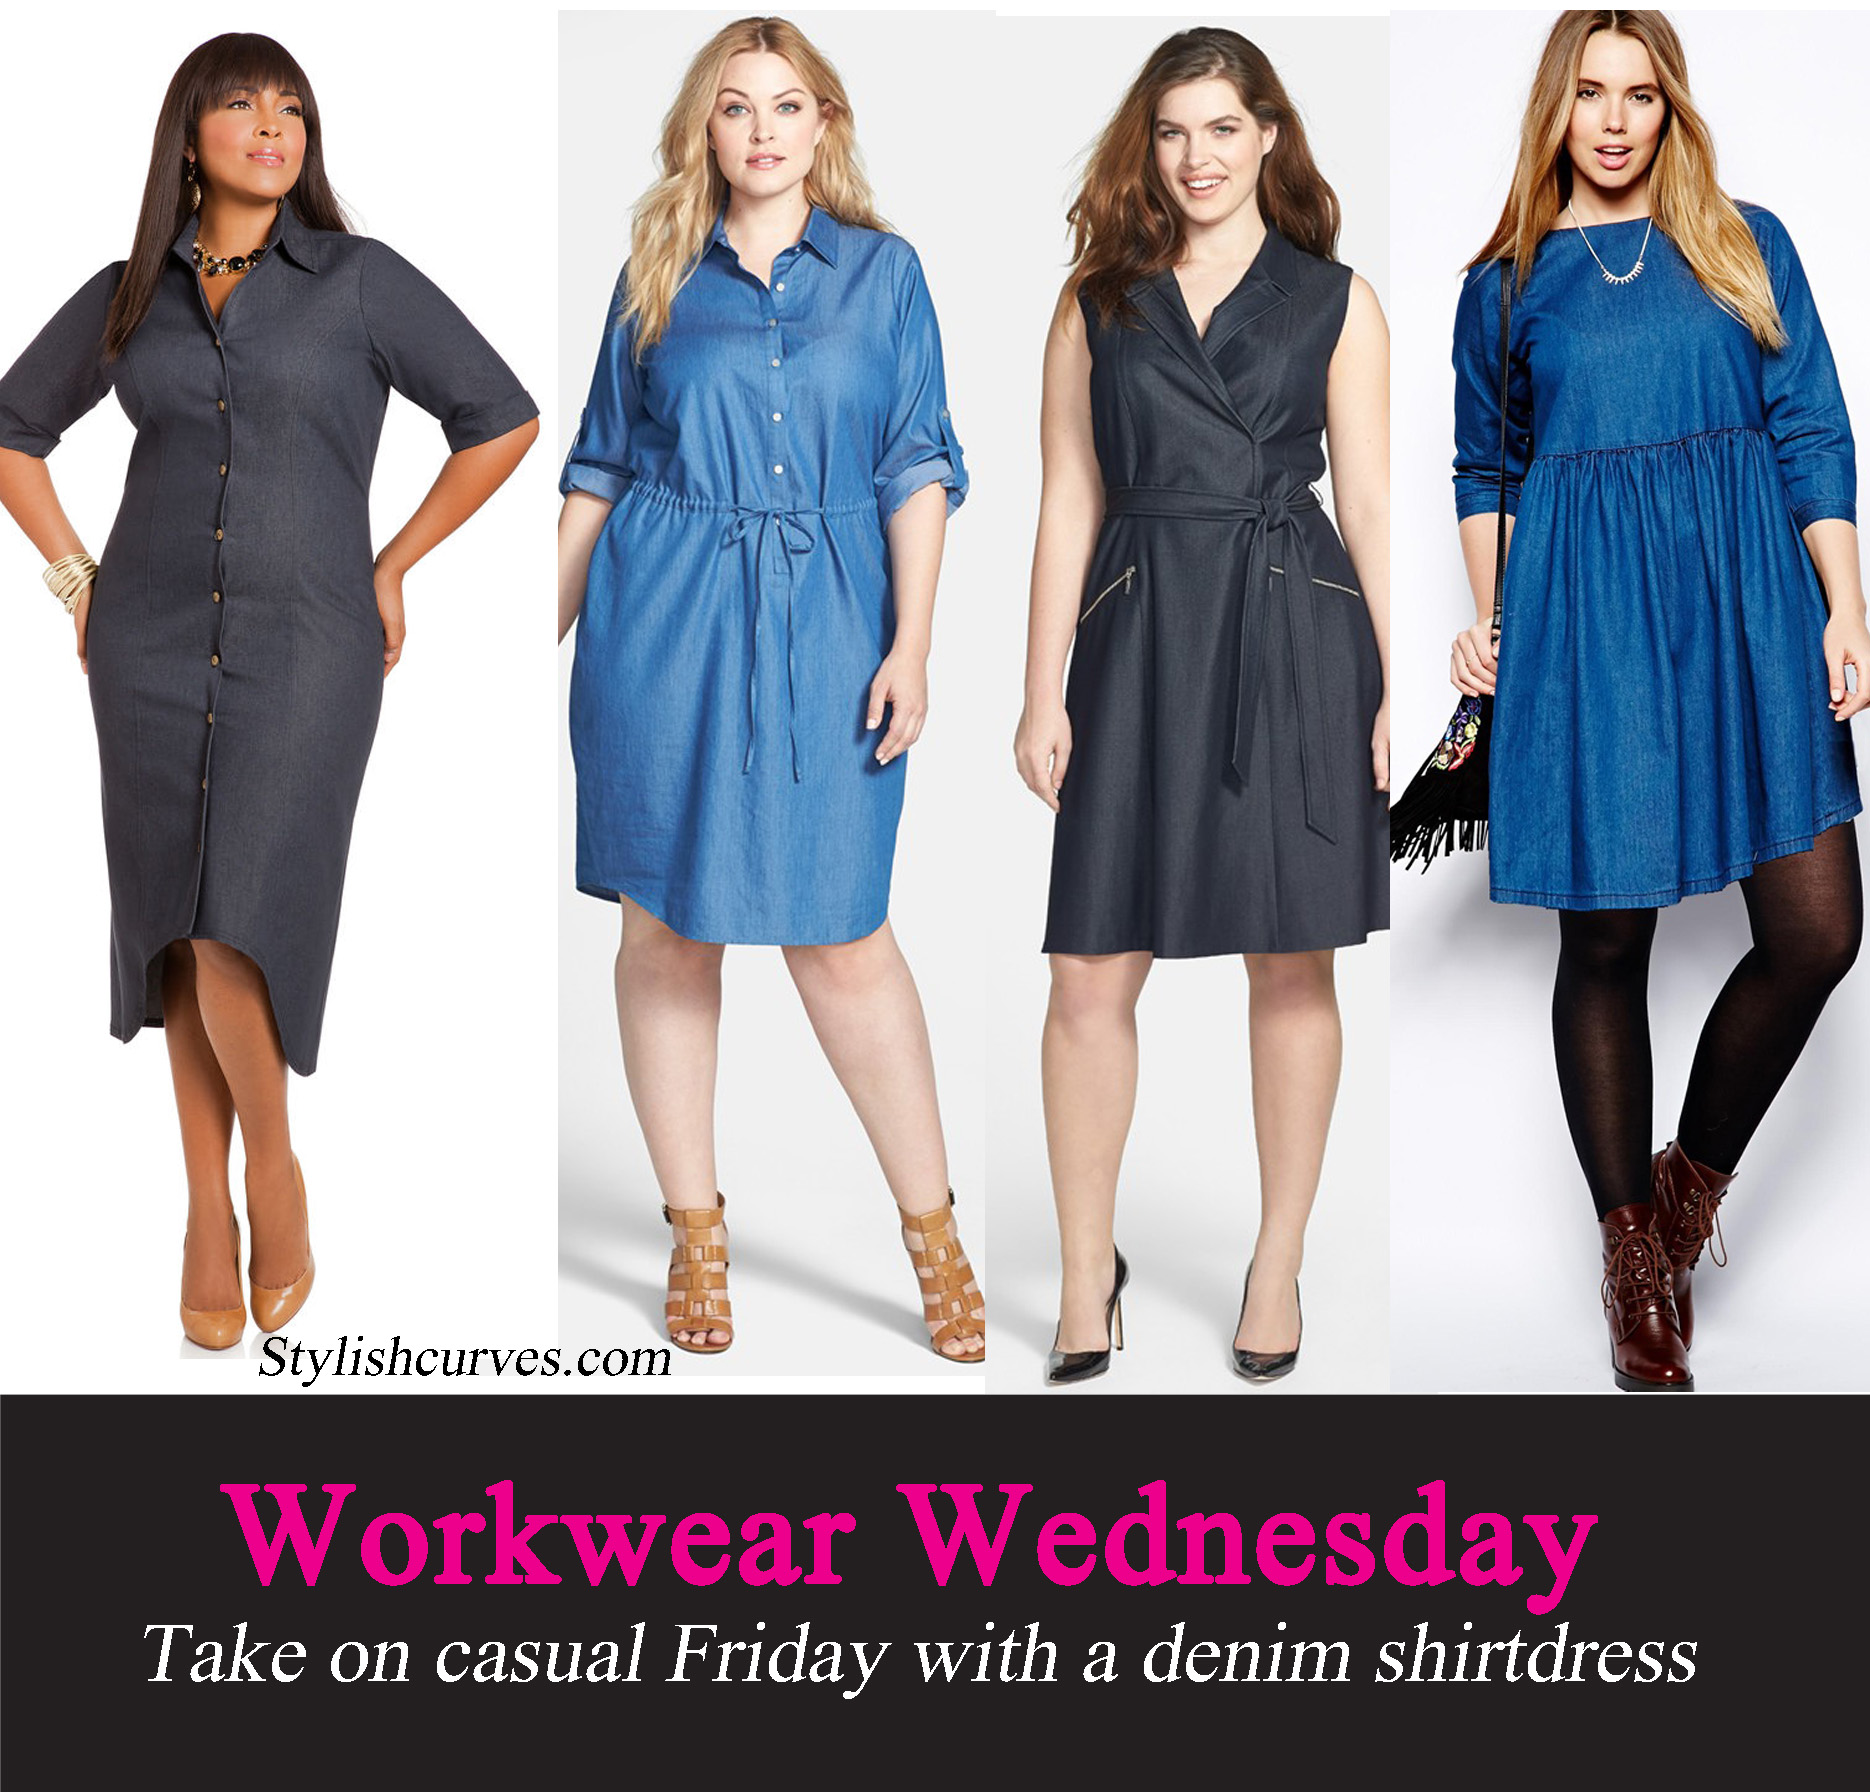 51f2baf1f15443 WORKWEAR WEDNESDAY  TAKE ON CASUAL FRIDAY WITH PLUS SIZE DENIM SHIRT-DRESSES